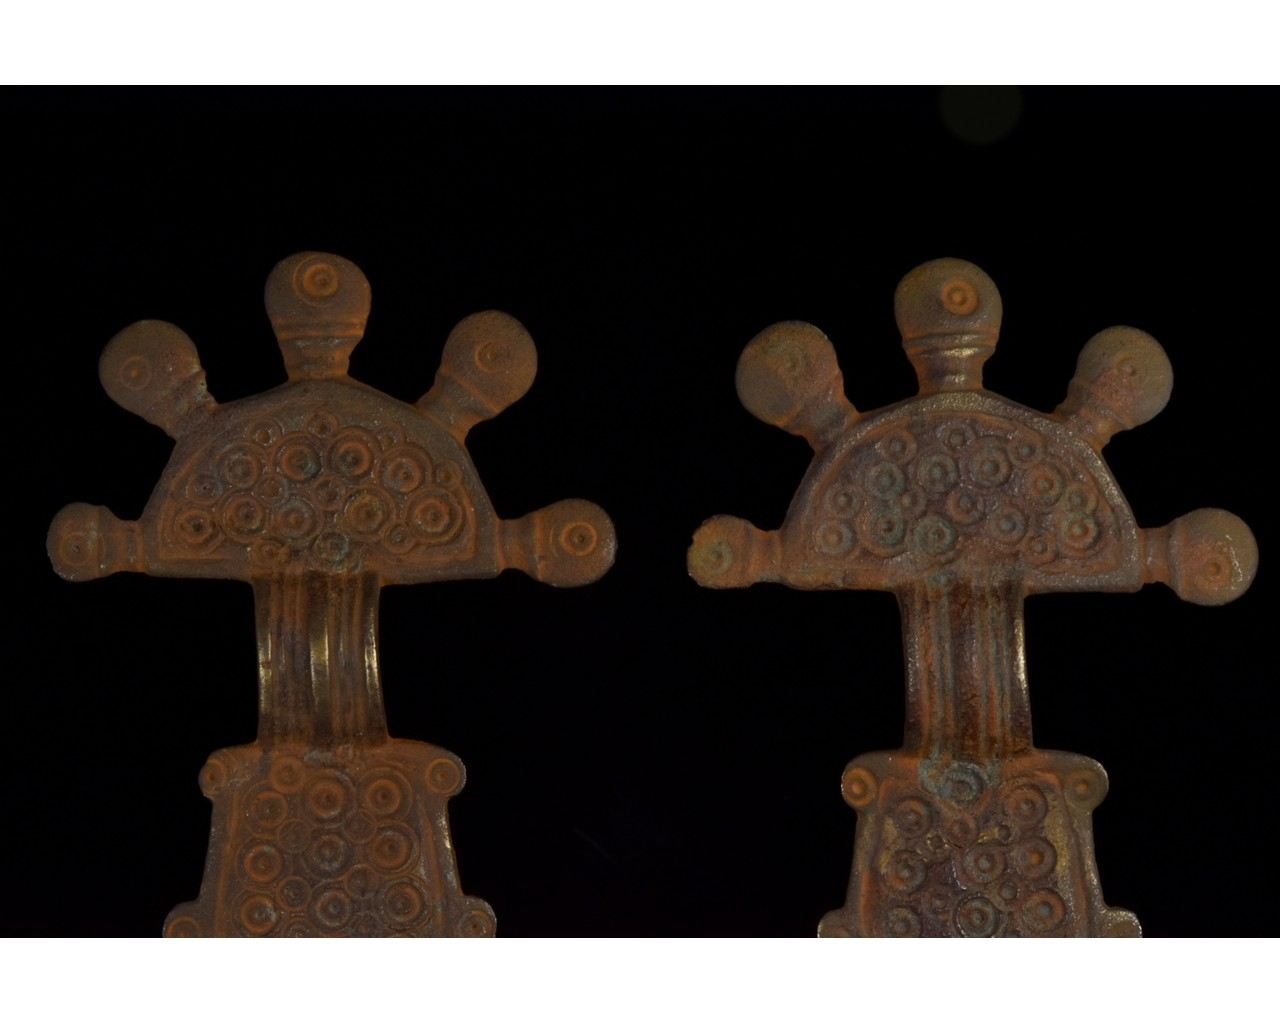 PAIR OF VISIGOTHIC RADIATE HEADED BOW BROOCHES - Image 3 of 8